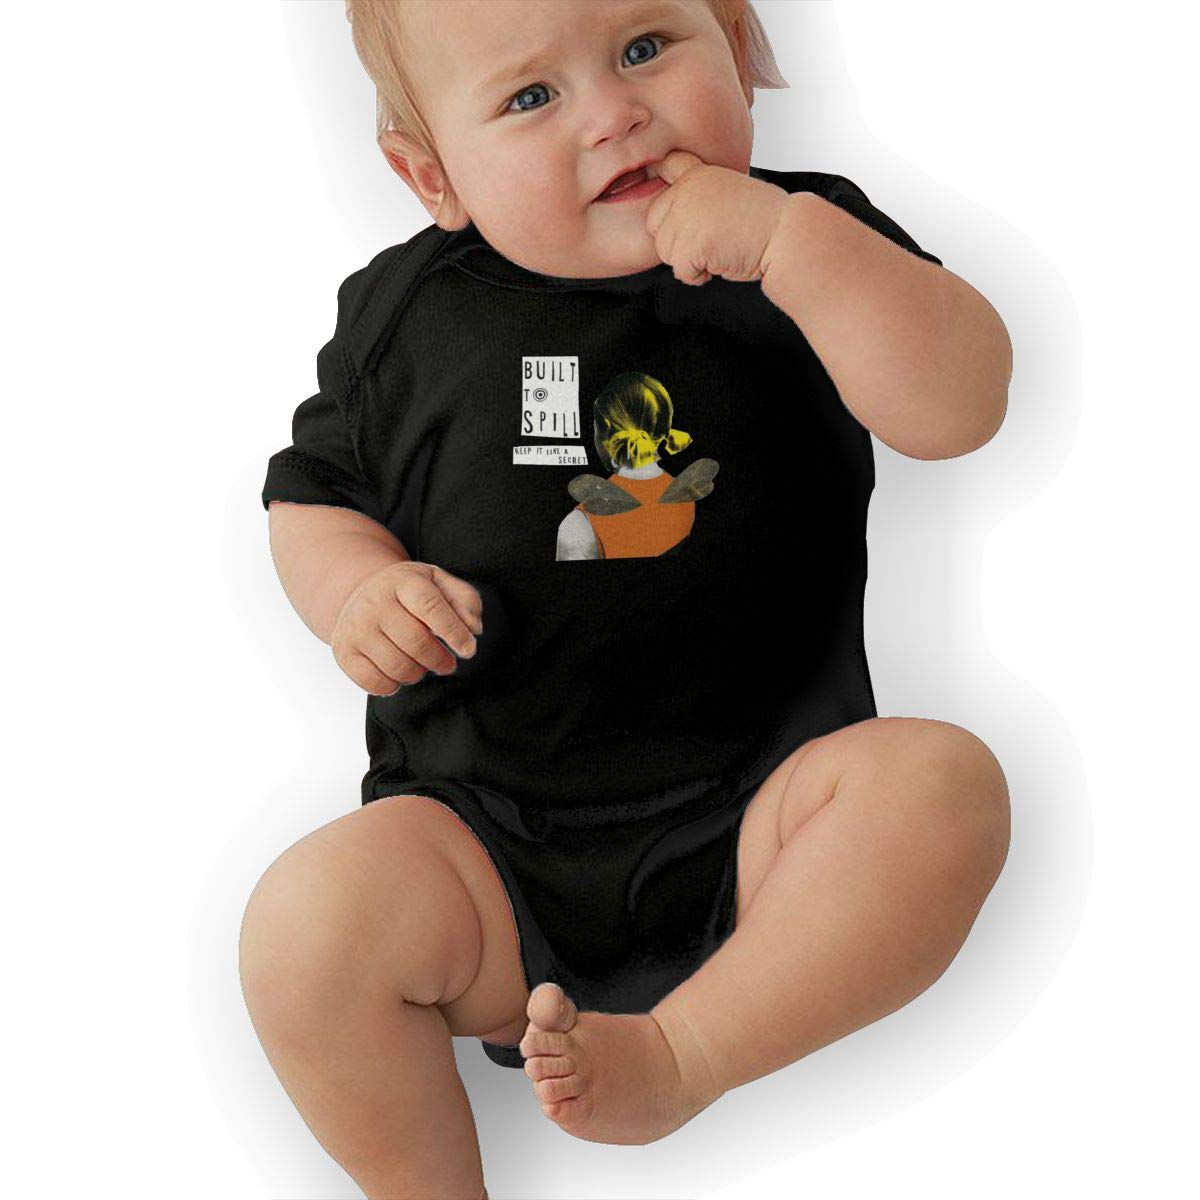 Built-to-Spill-Keep-It-Like-A-Secret Kids Baby T Shirt Cute Short Sleeve Hooded Romper Jumpsuit Baby Crawler Clothes Black